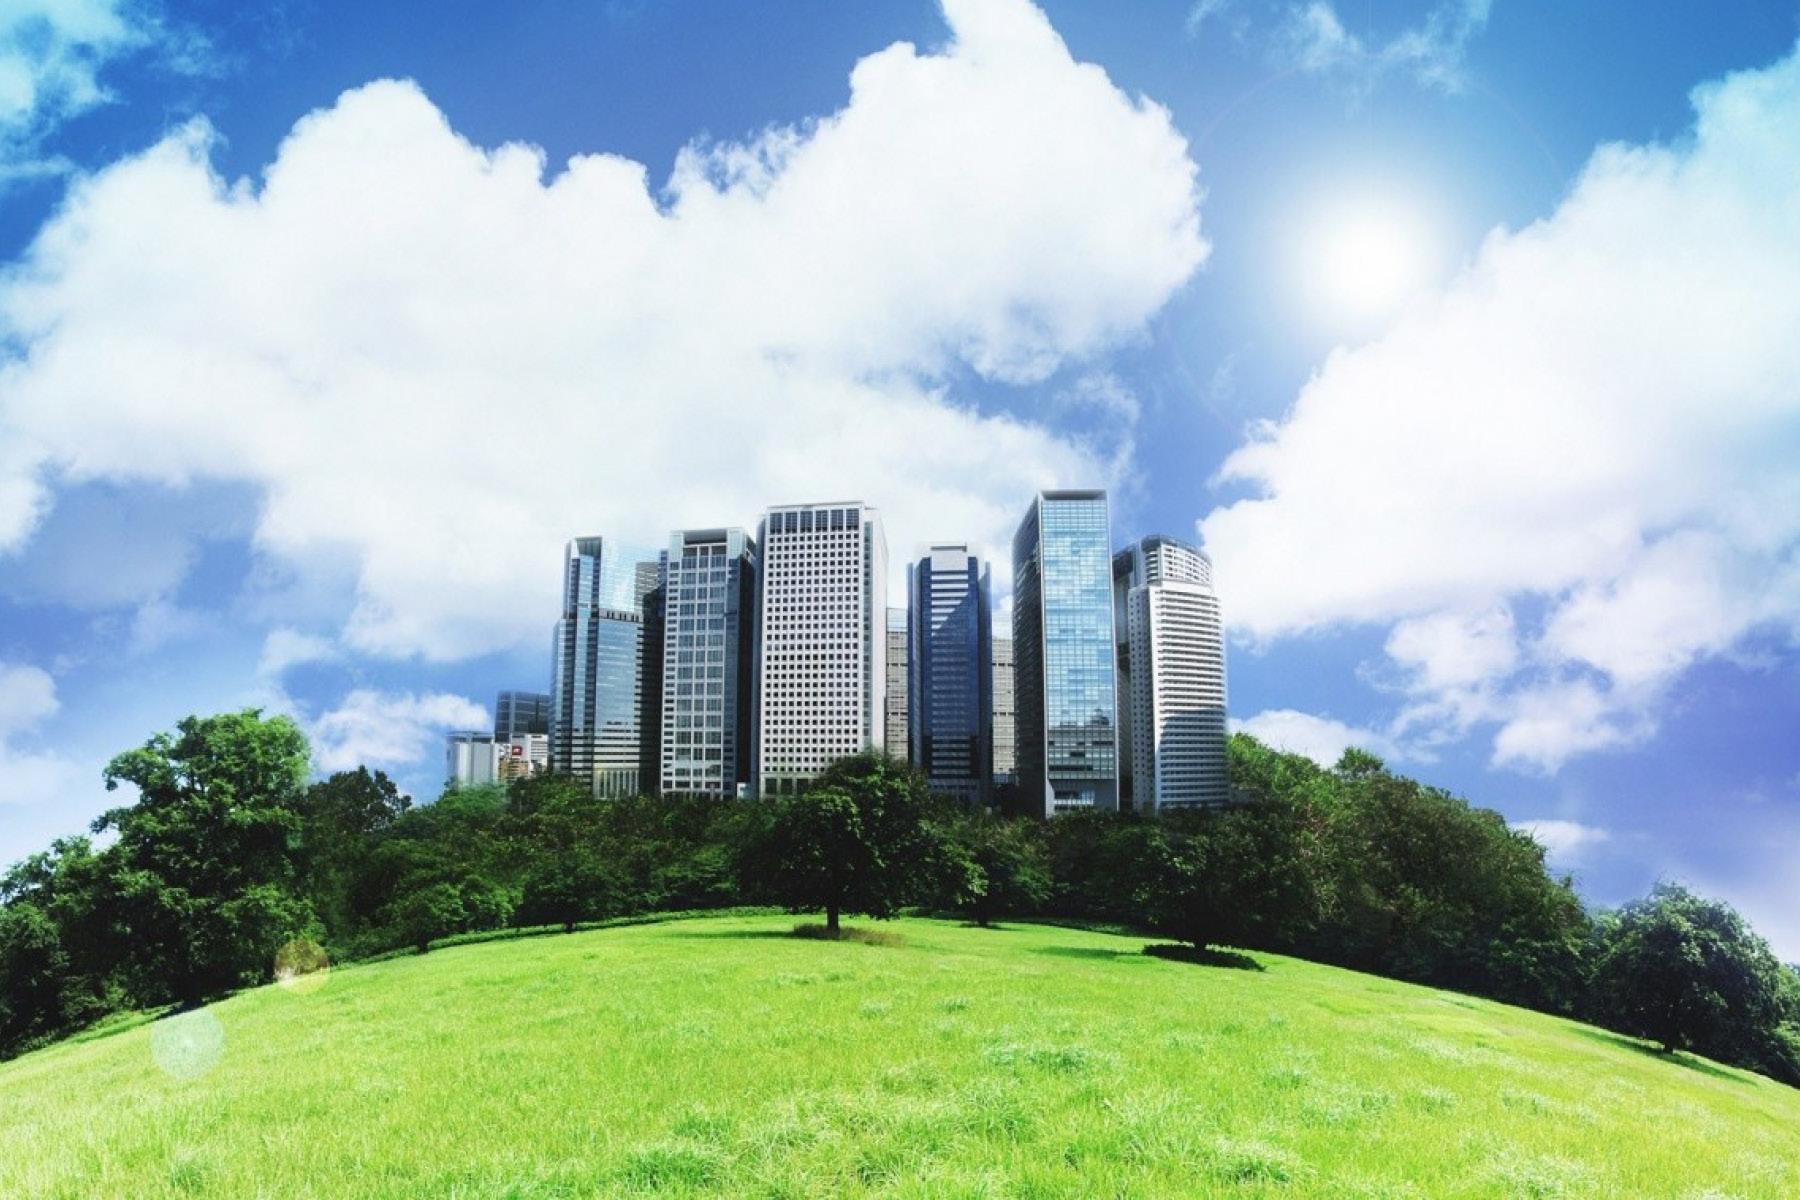 Top 5 greenest cities in the u s back to the roots blog for Top 5 best cities in usa